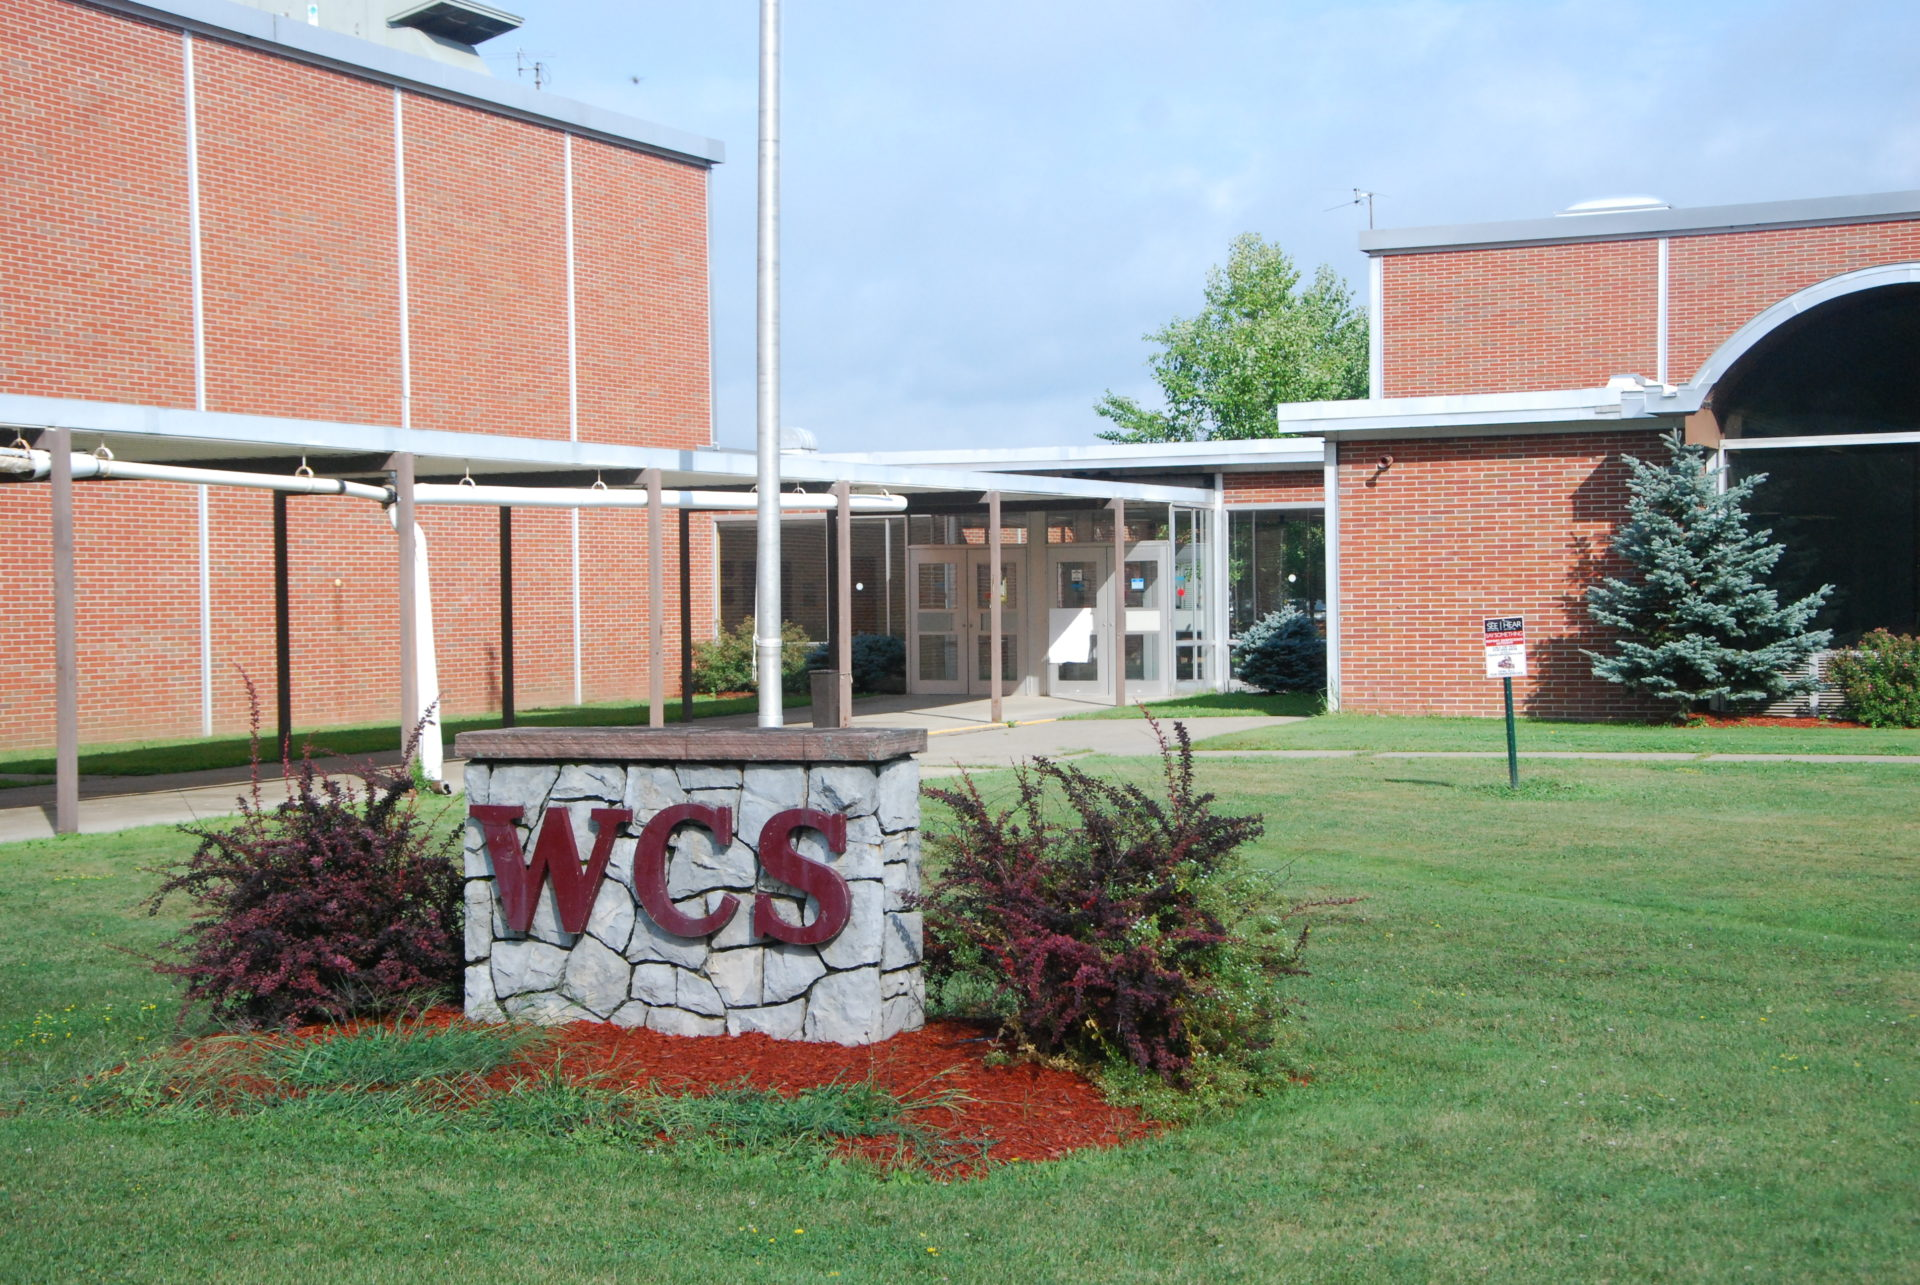 Closed school in 'uncharted waters'